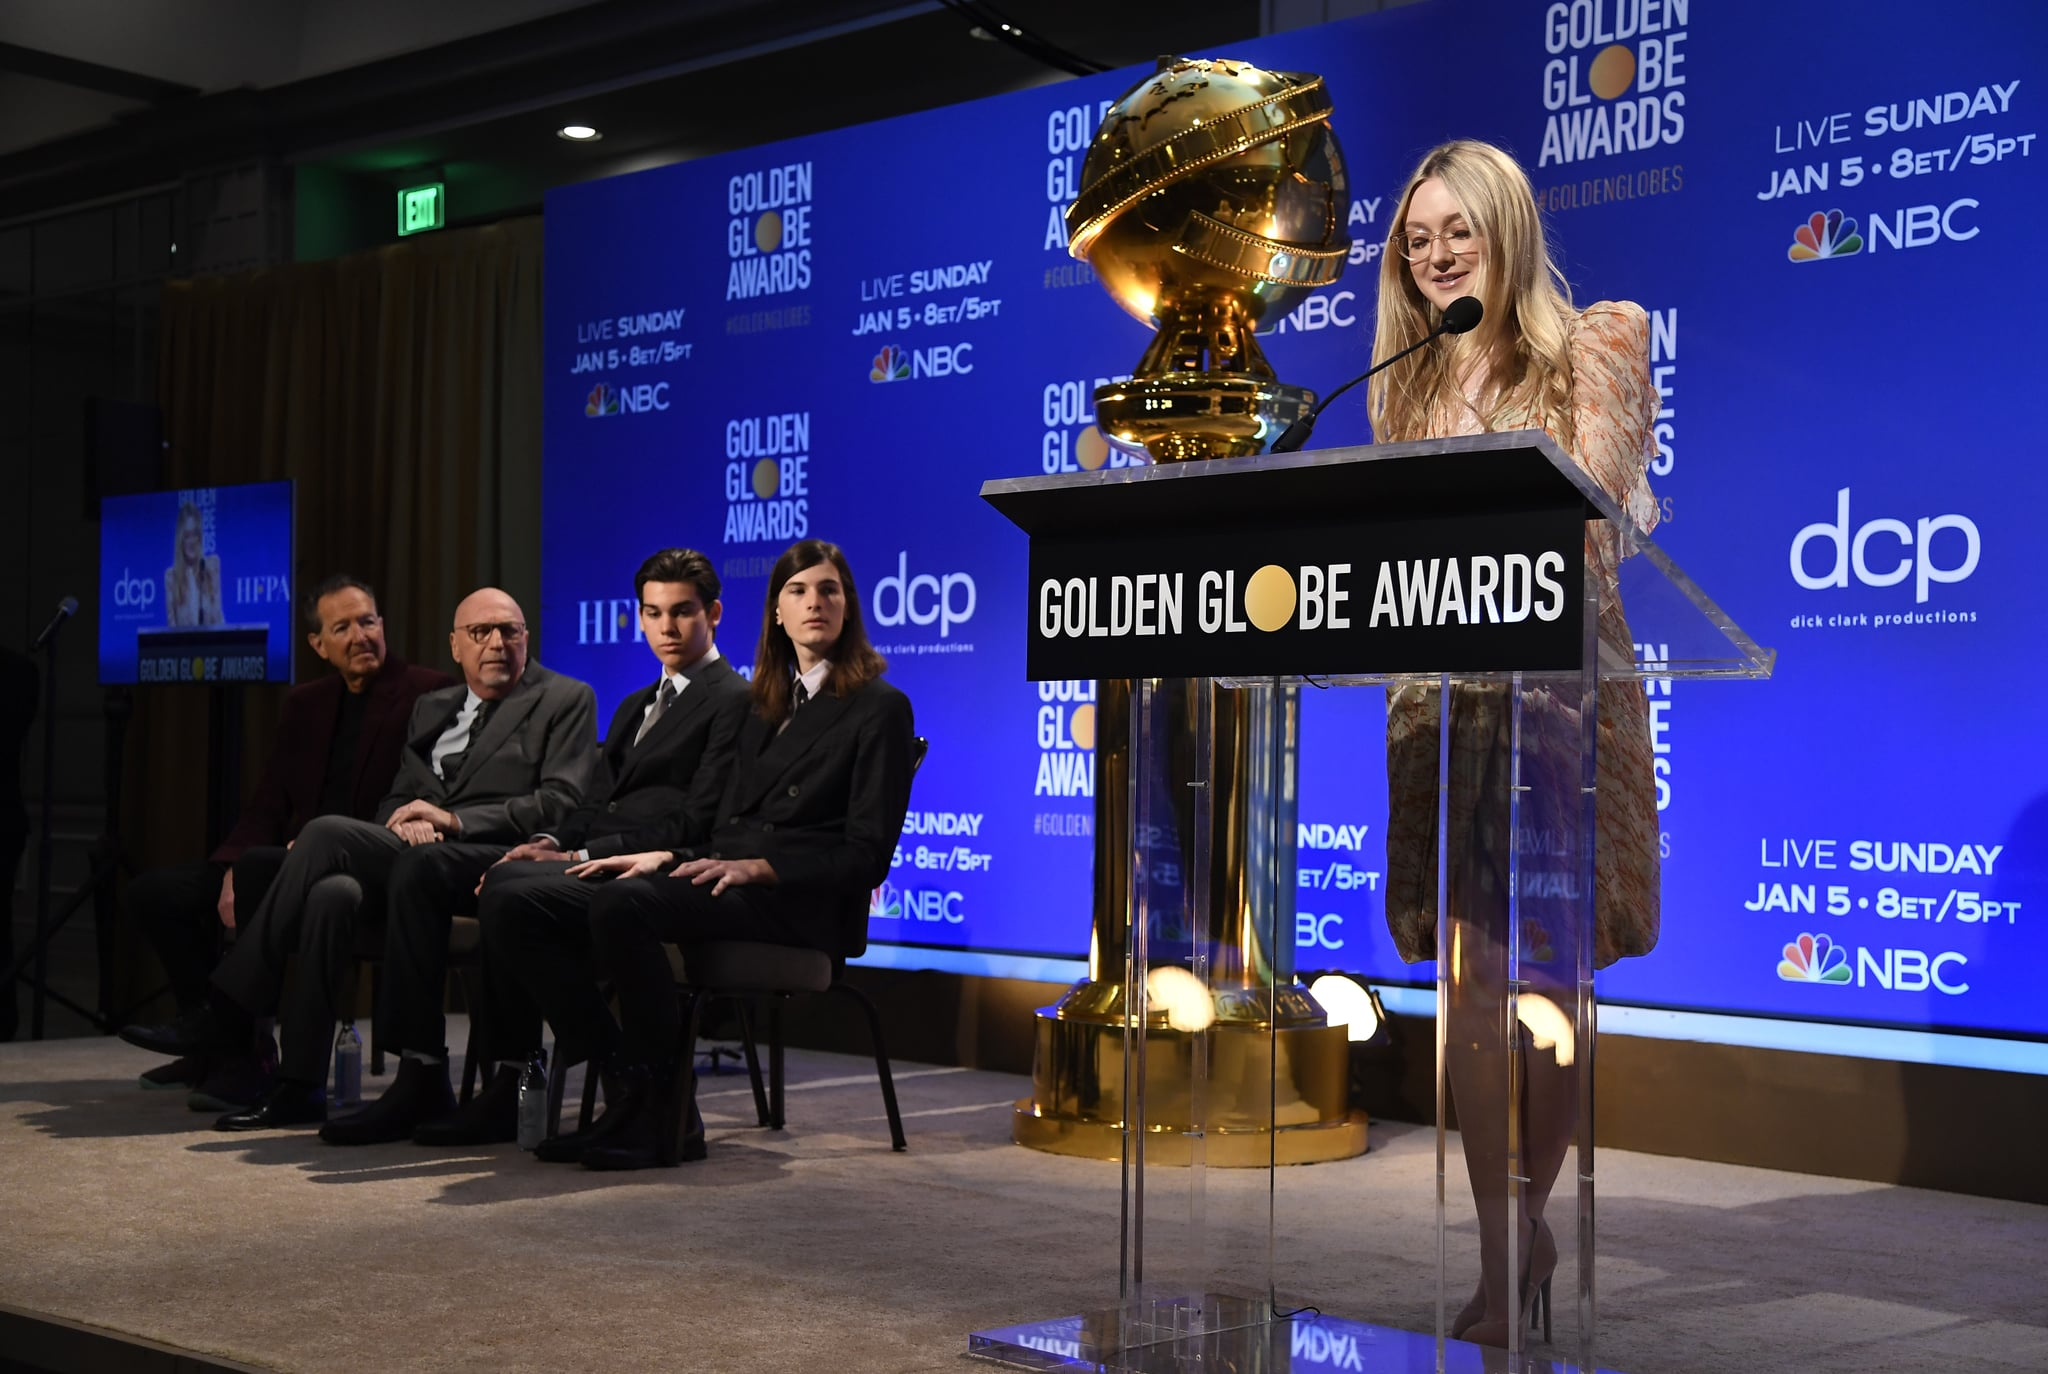 BEVERLY HILLS, CA - DECEMBER 09: Presenter Dakota Fanning speaks at the 77th Annual Golden Globe Awards Nominations Announcement at The Beverly Hilton Hotel on December 9, 2019 in Beverly Hills, California. (Photo by Kevork Djansezian/Getty Images)